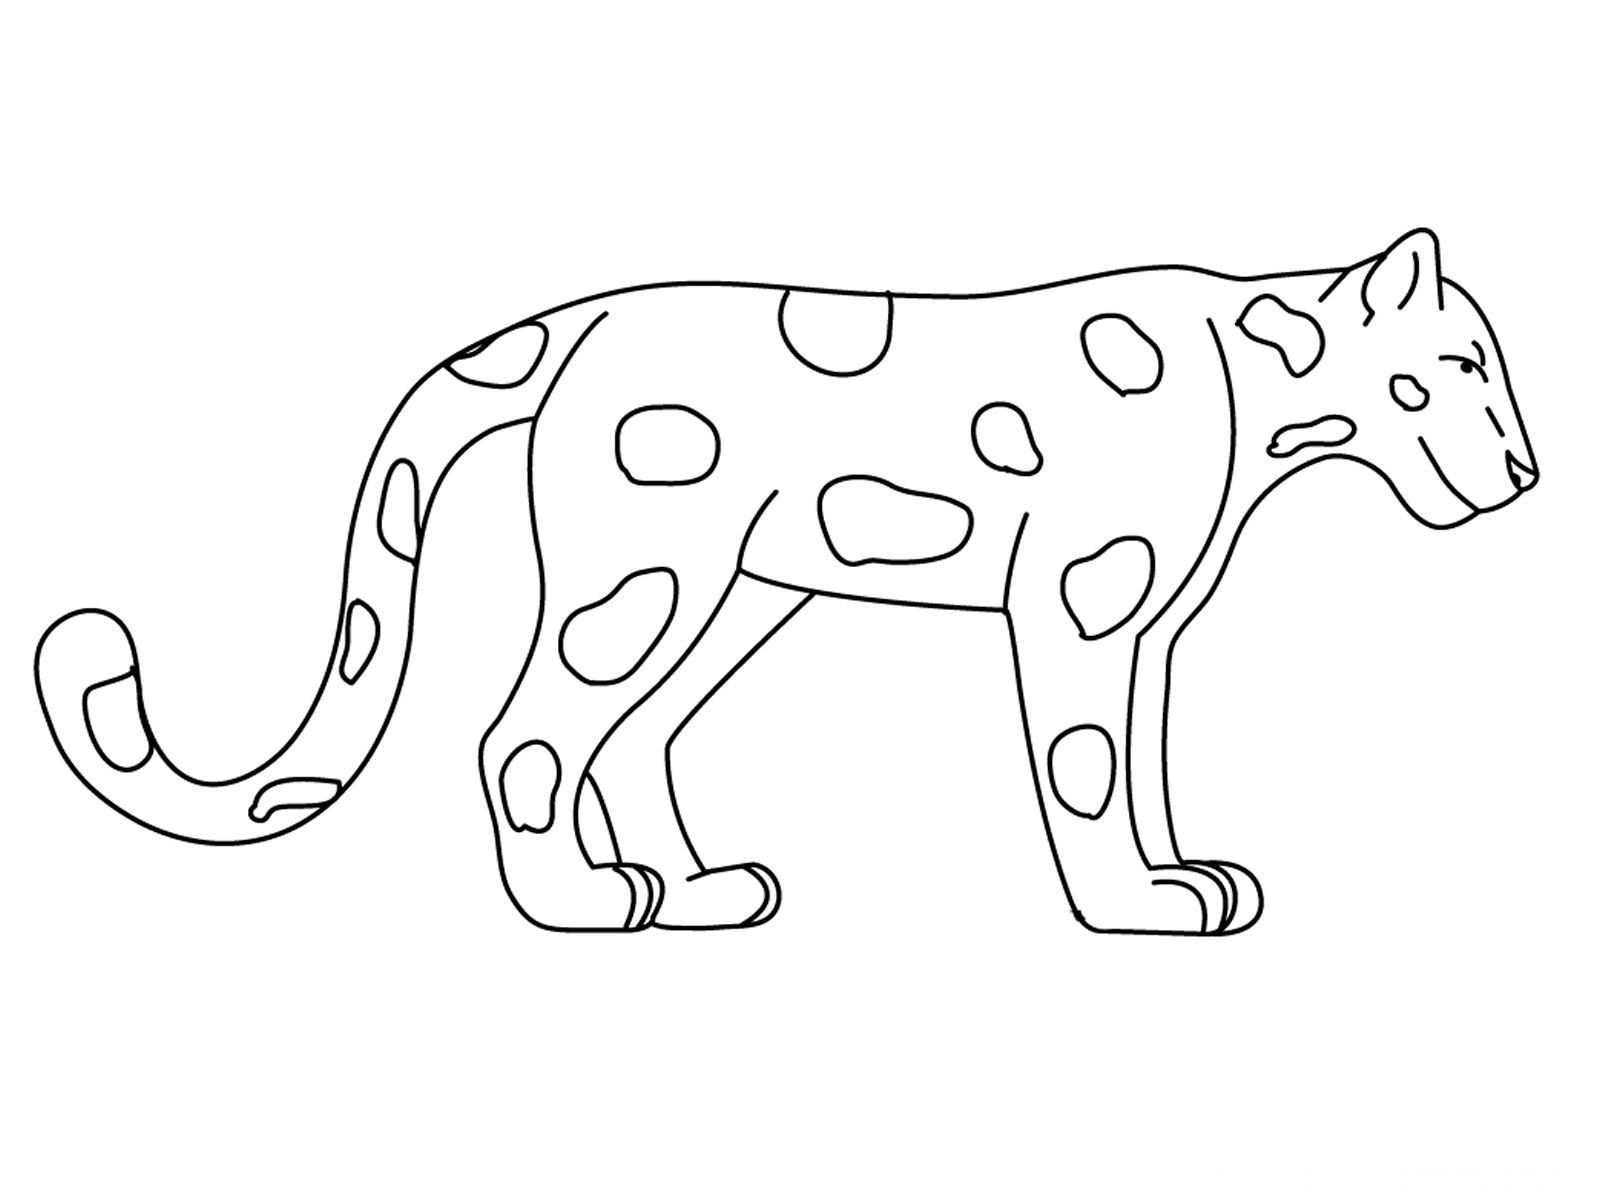 Jaguar Coloring Pages To Print Jaguar Coloring Pages To Print Fresh Jaguar Outline Free Printable Animal Coloring Pages Jaguar Animal Rainforest Animals